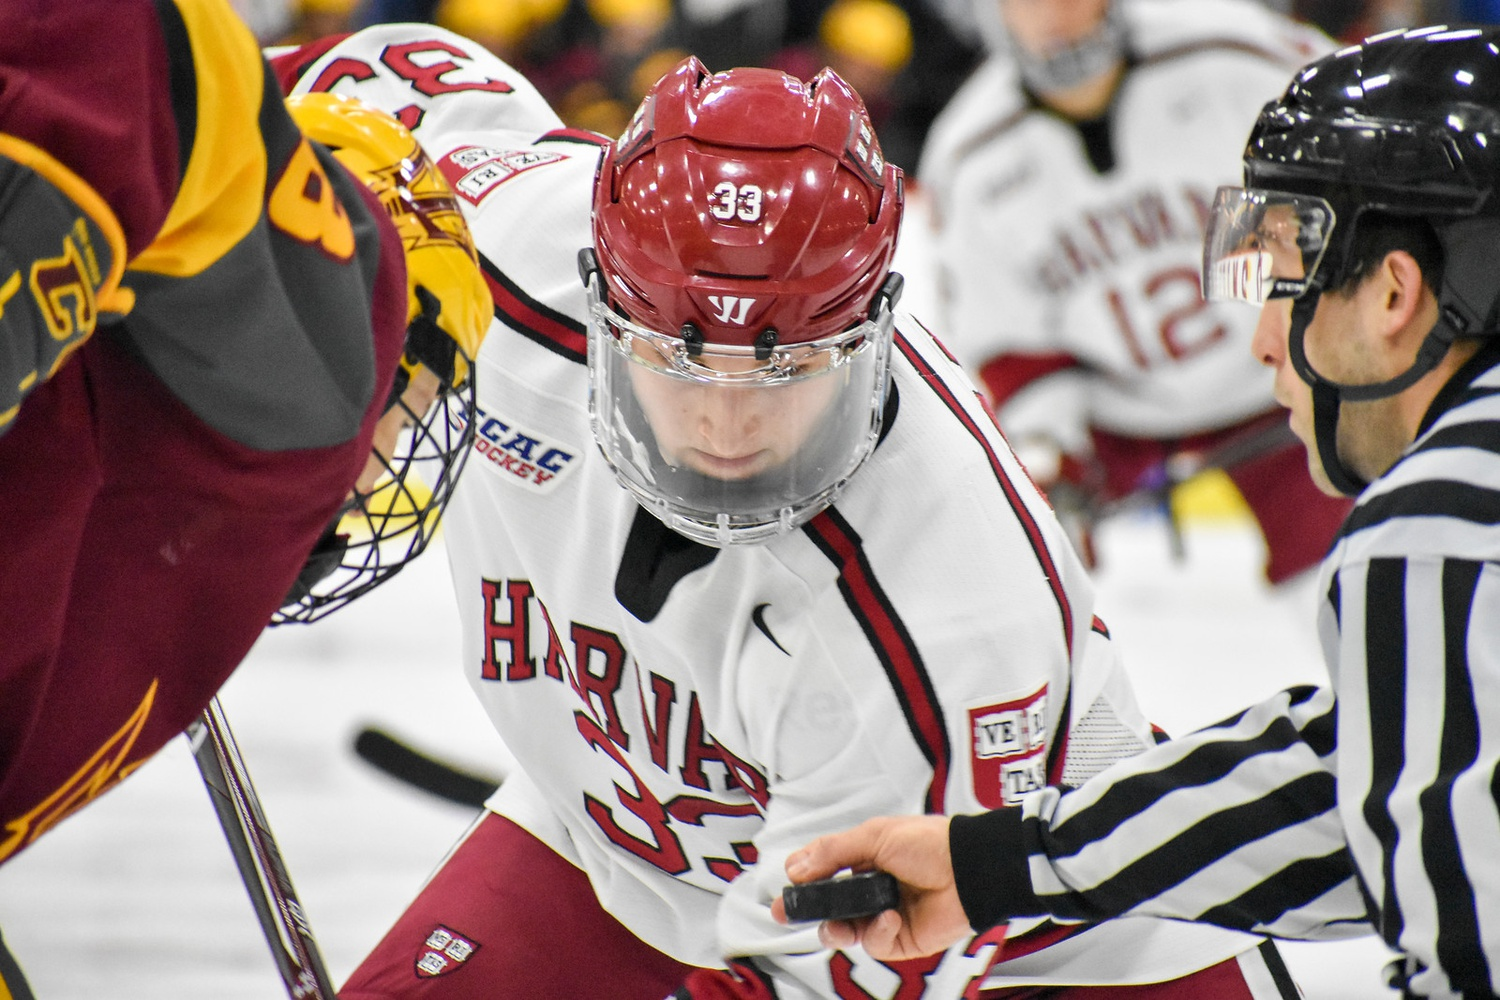 Junior forward Jack Badini won a higher percentage of his draws than all but one NCAA centerman last season.